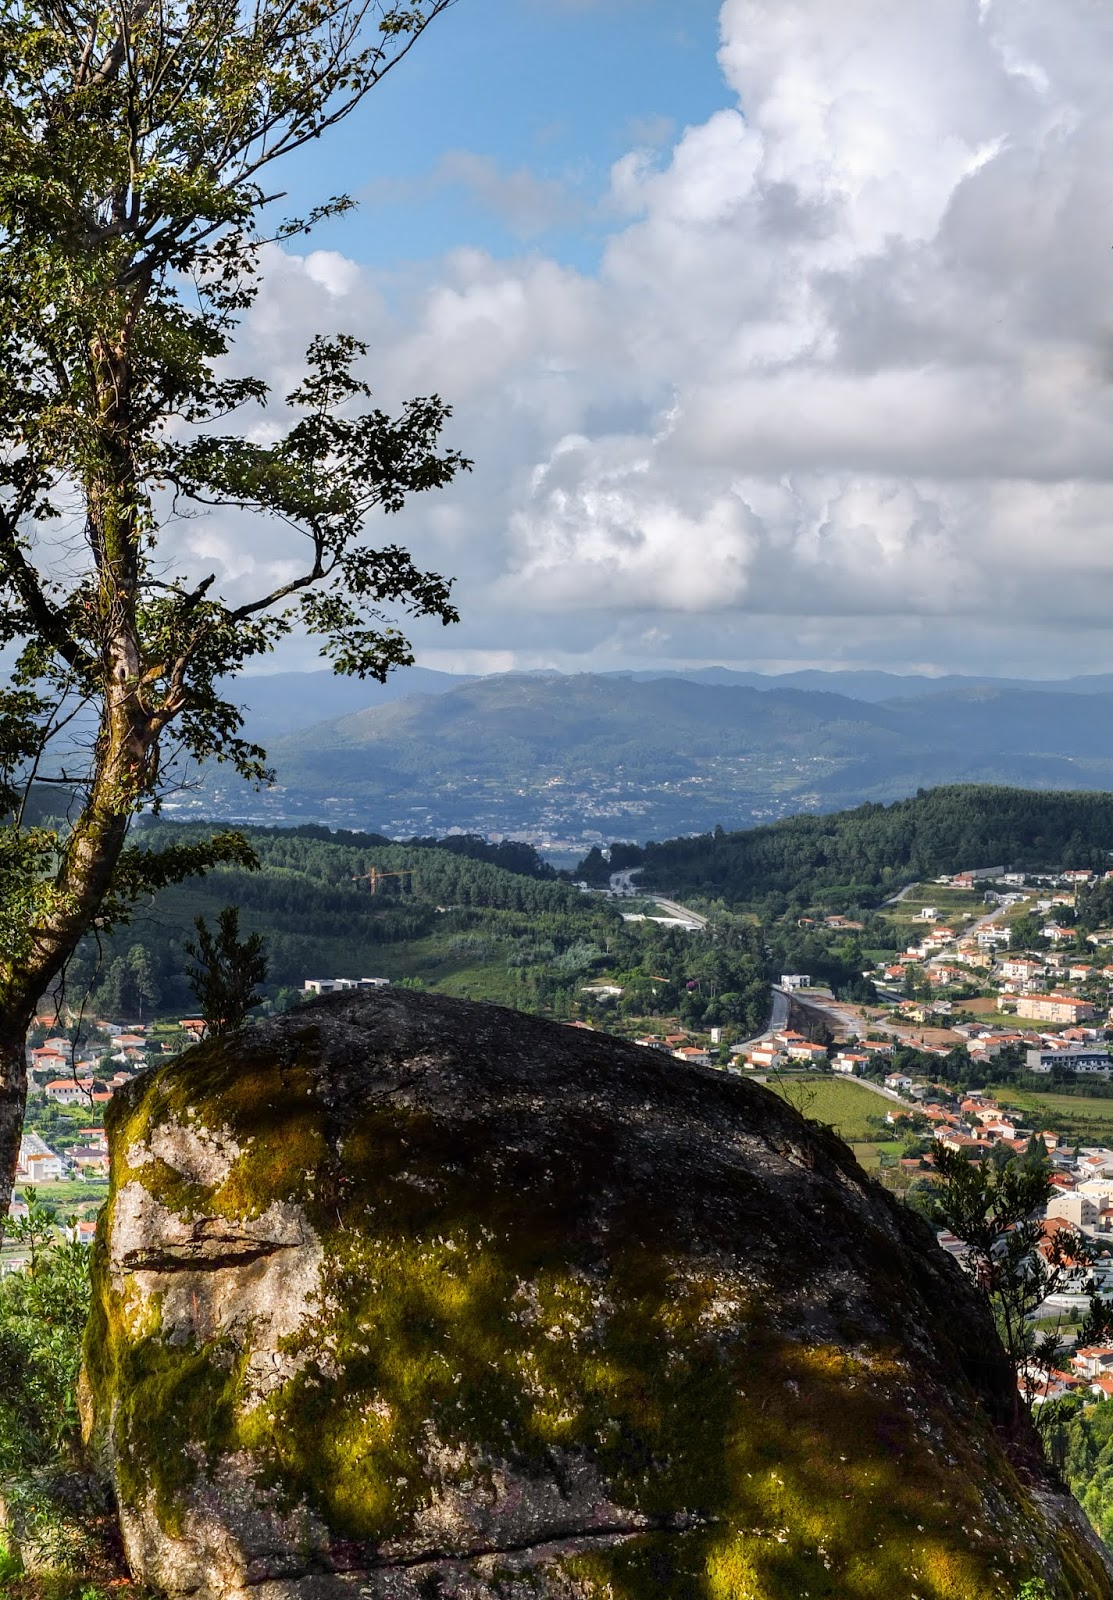 A giant rock on the hillside of the Espinho Mountain in Portugal with mountain views.